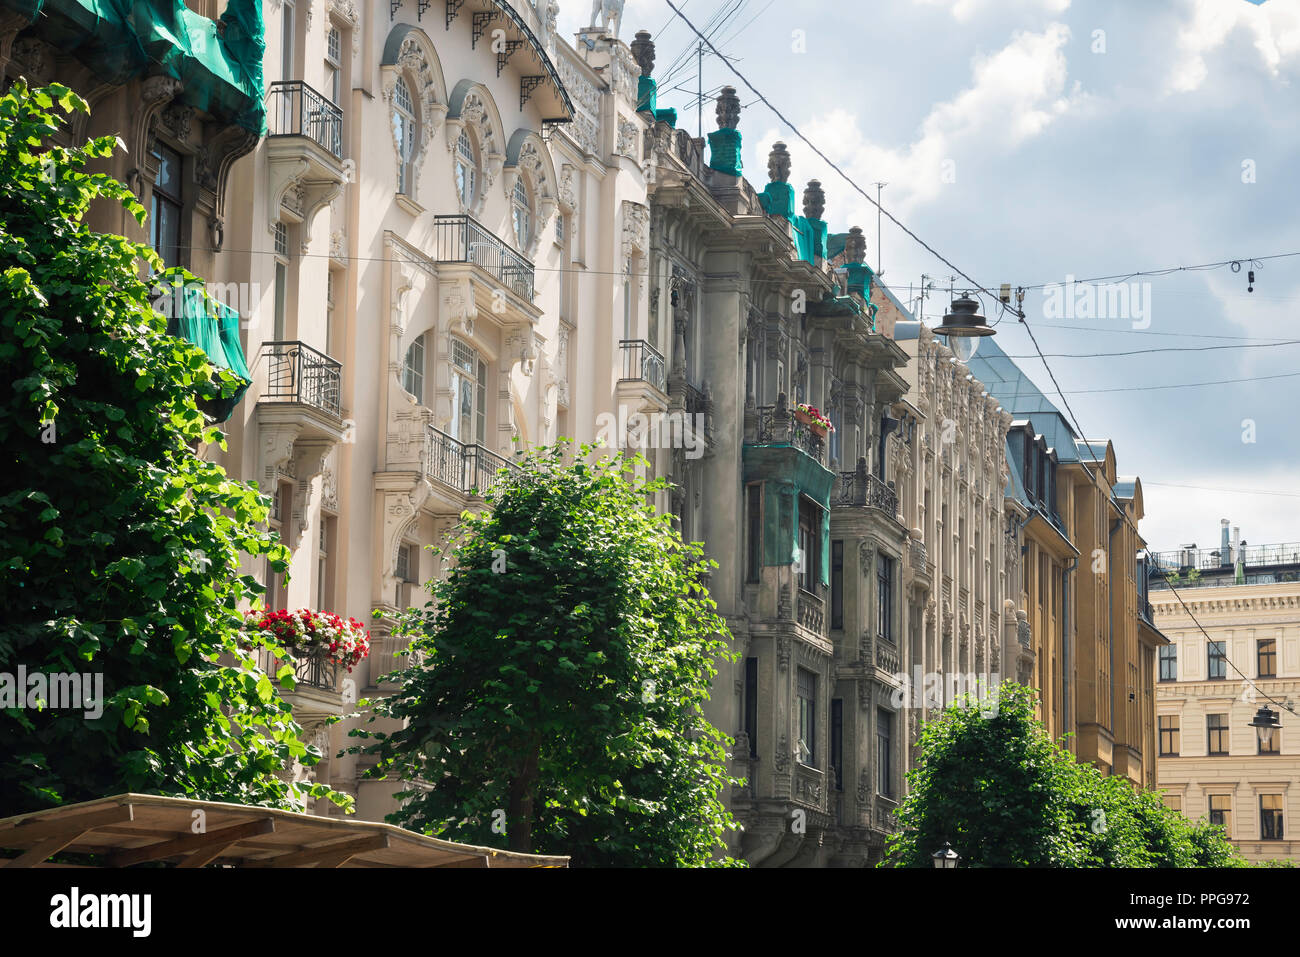 View of a row of Jugendstil style buildings (both renovated and unrenovated) on the north side of Alberta Iela in the Art Nouveau district of Riga. - Stock Image